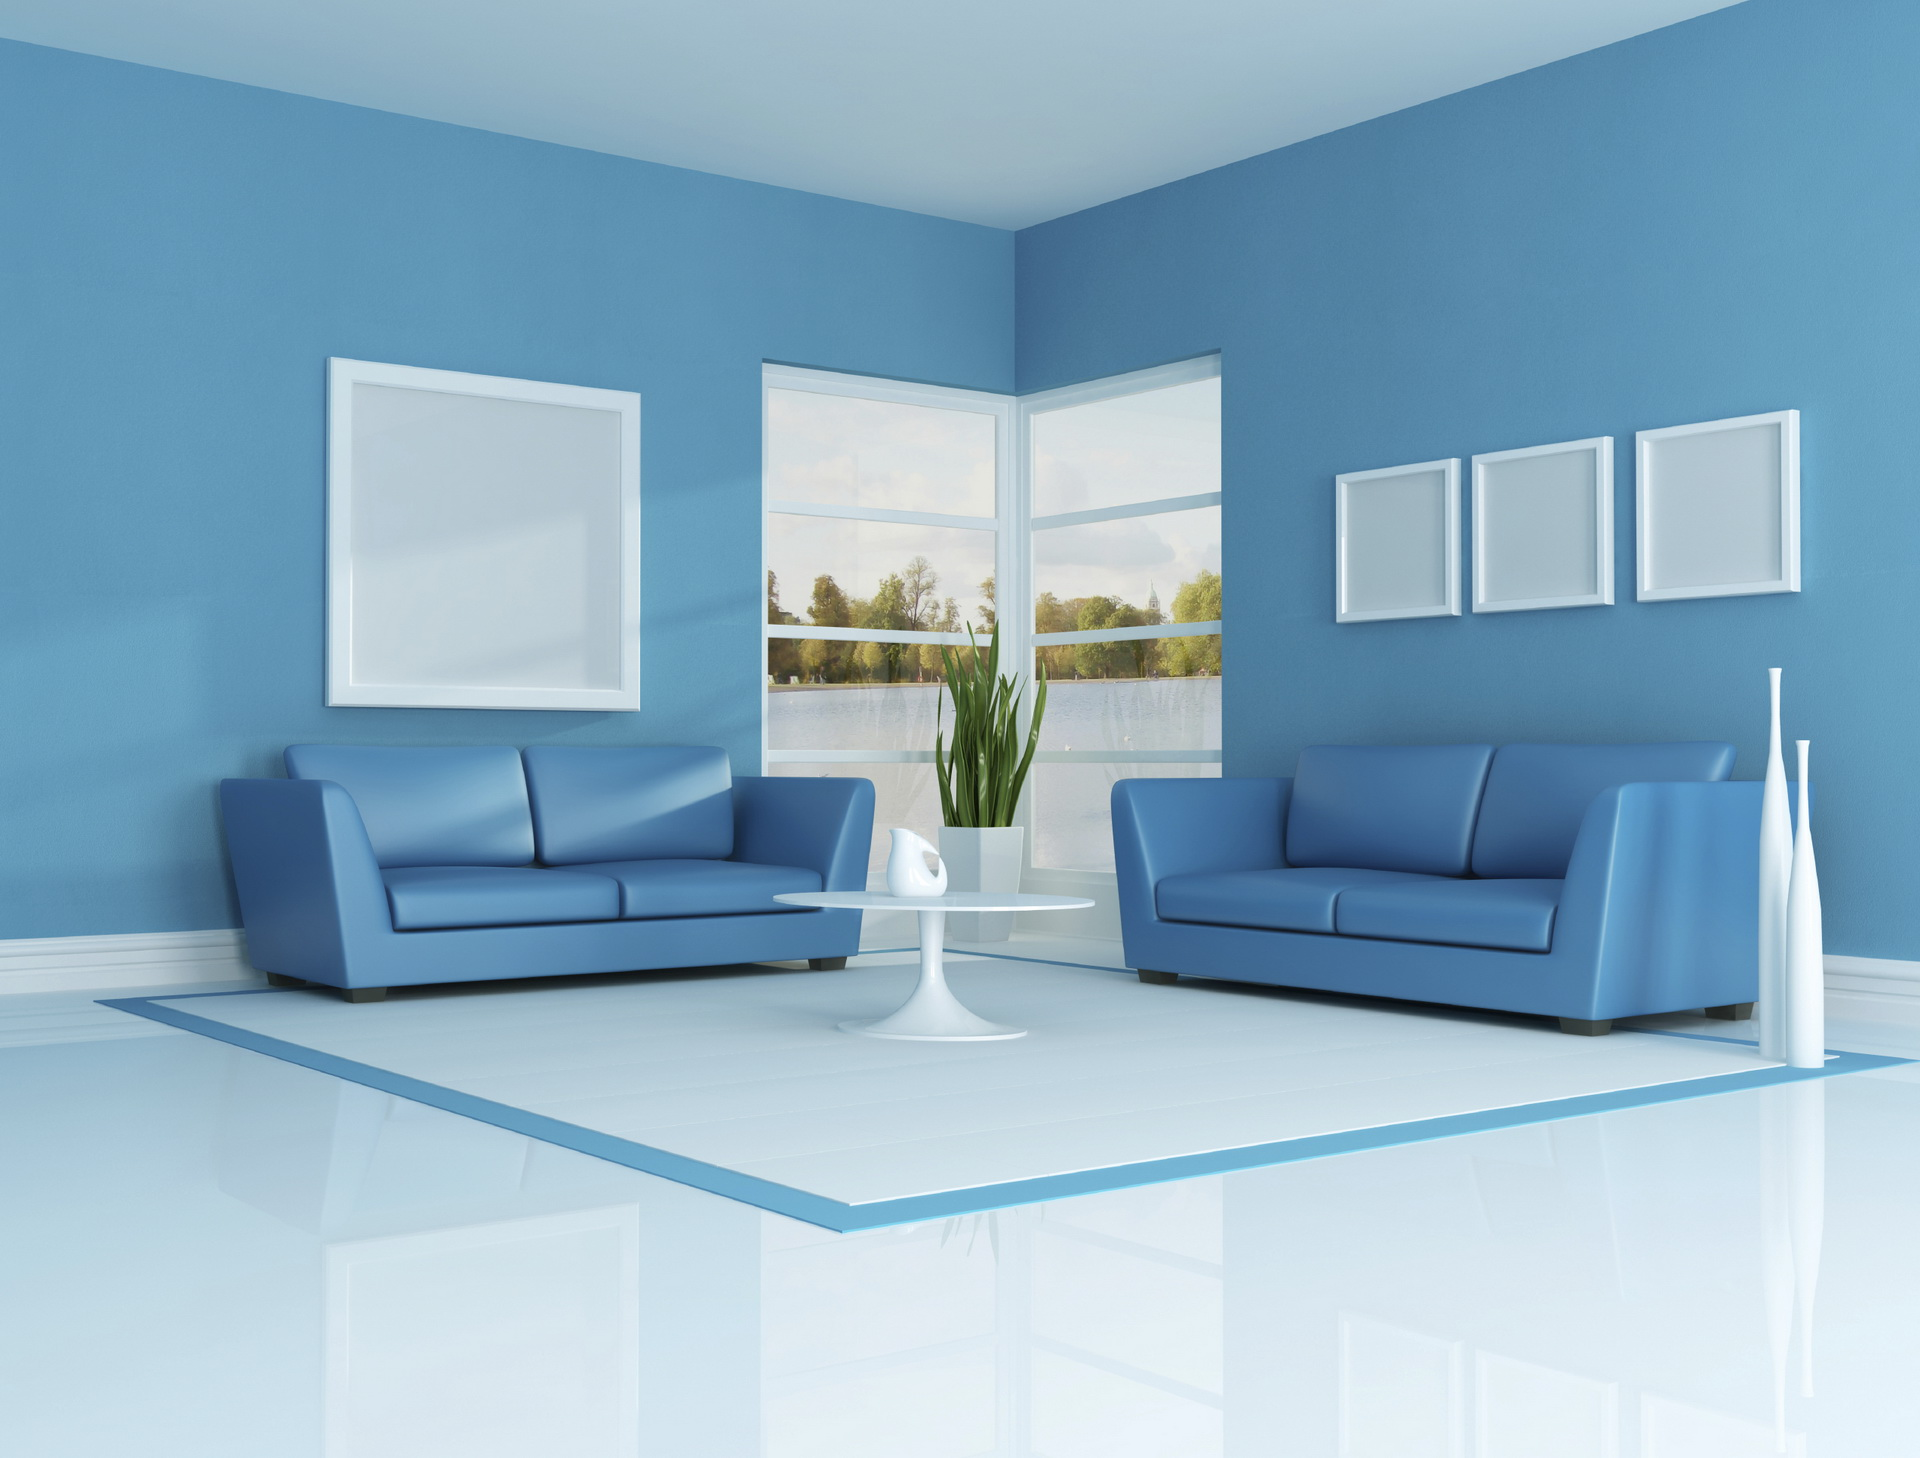 Asian paints colour shades blue 21 tips for wall for Asian paints interior designs